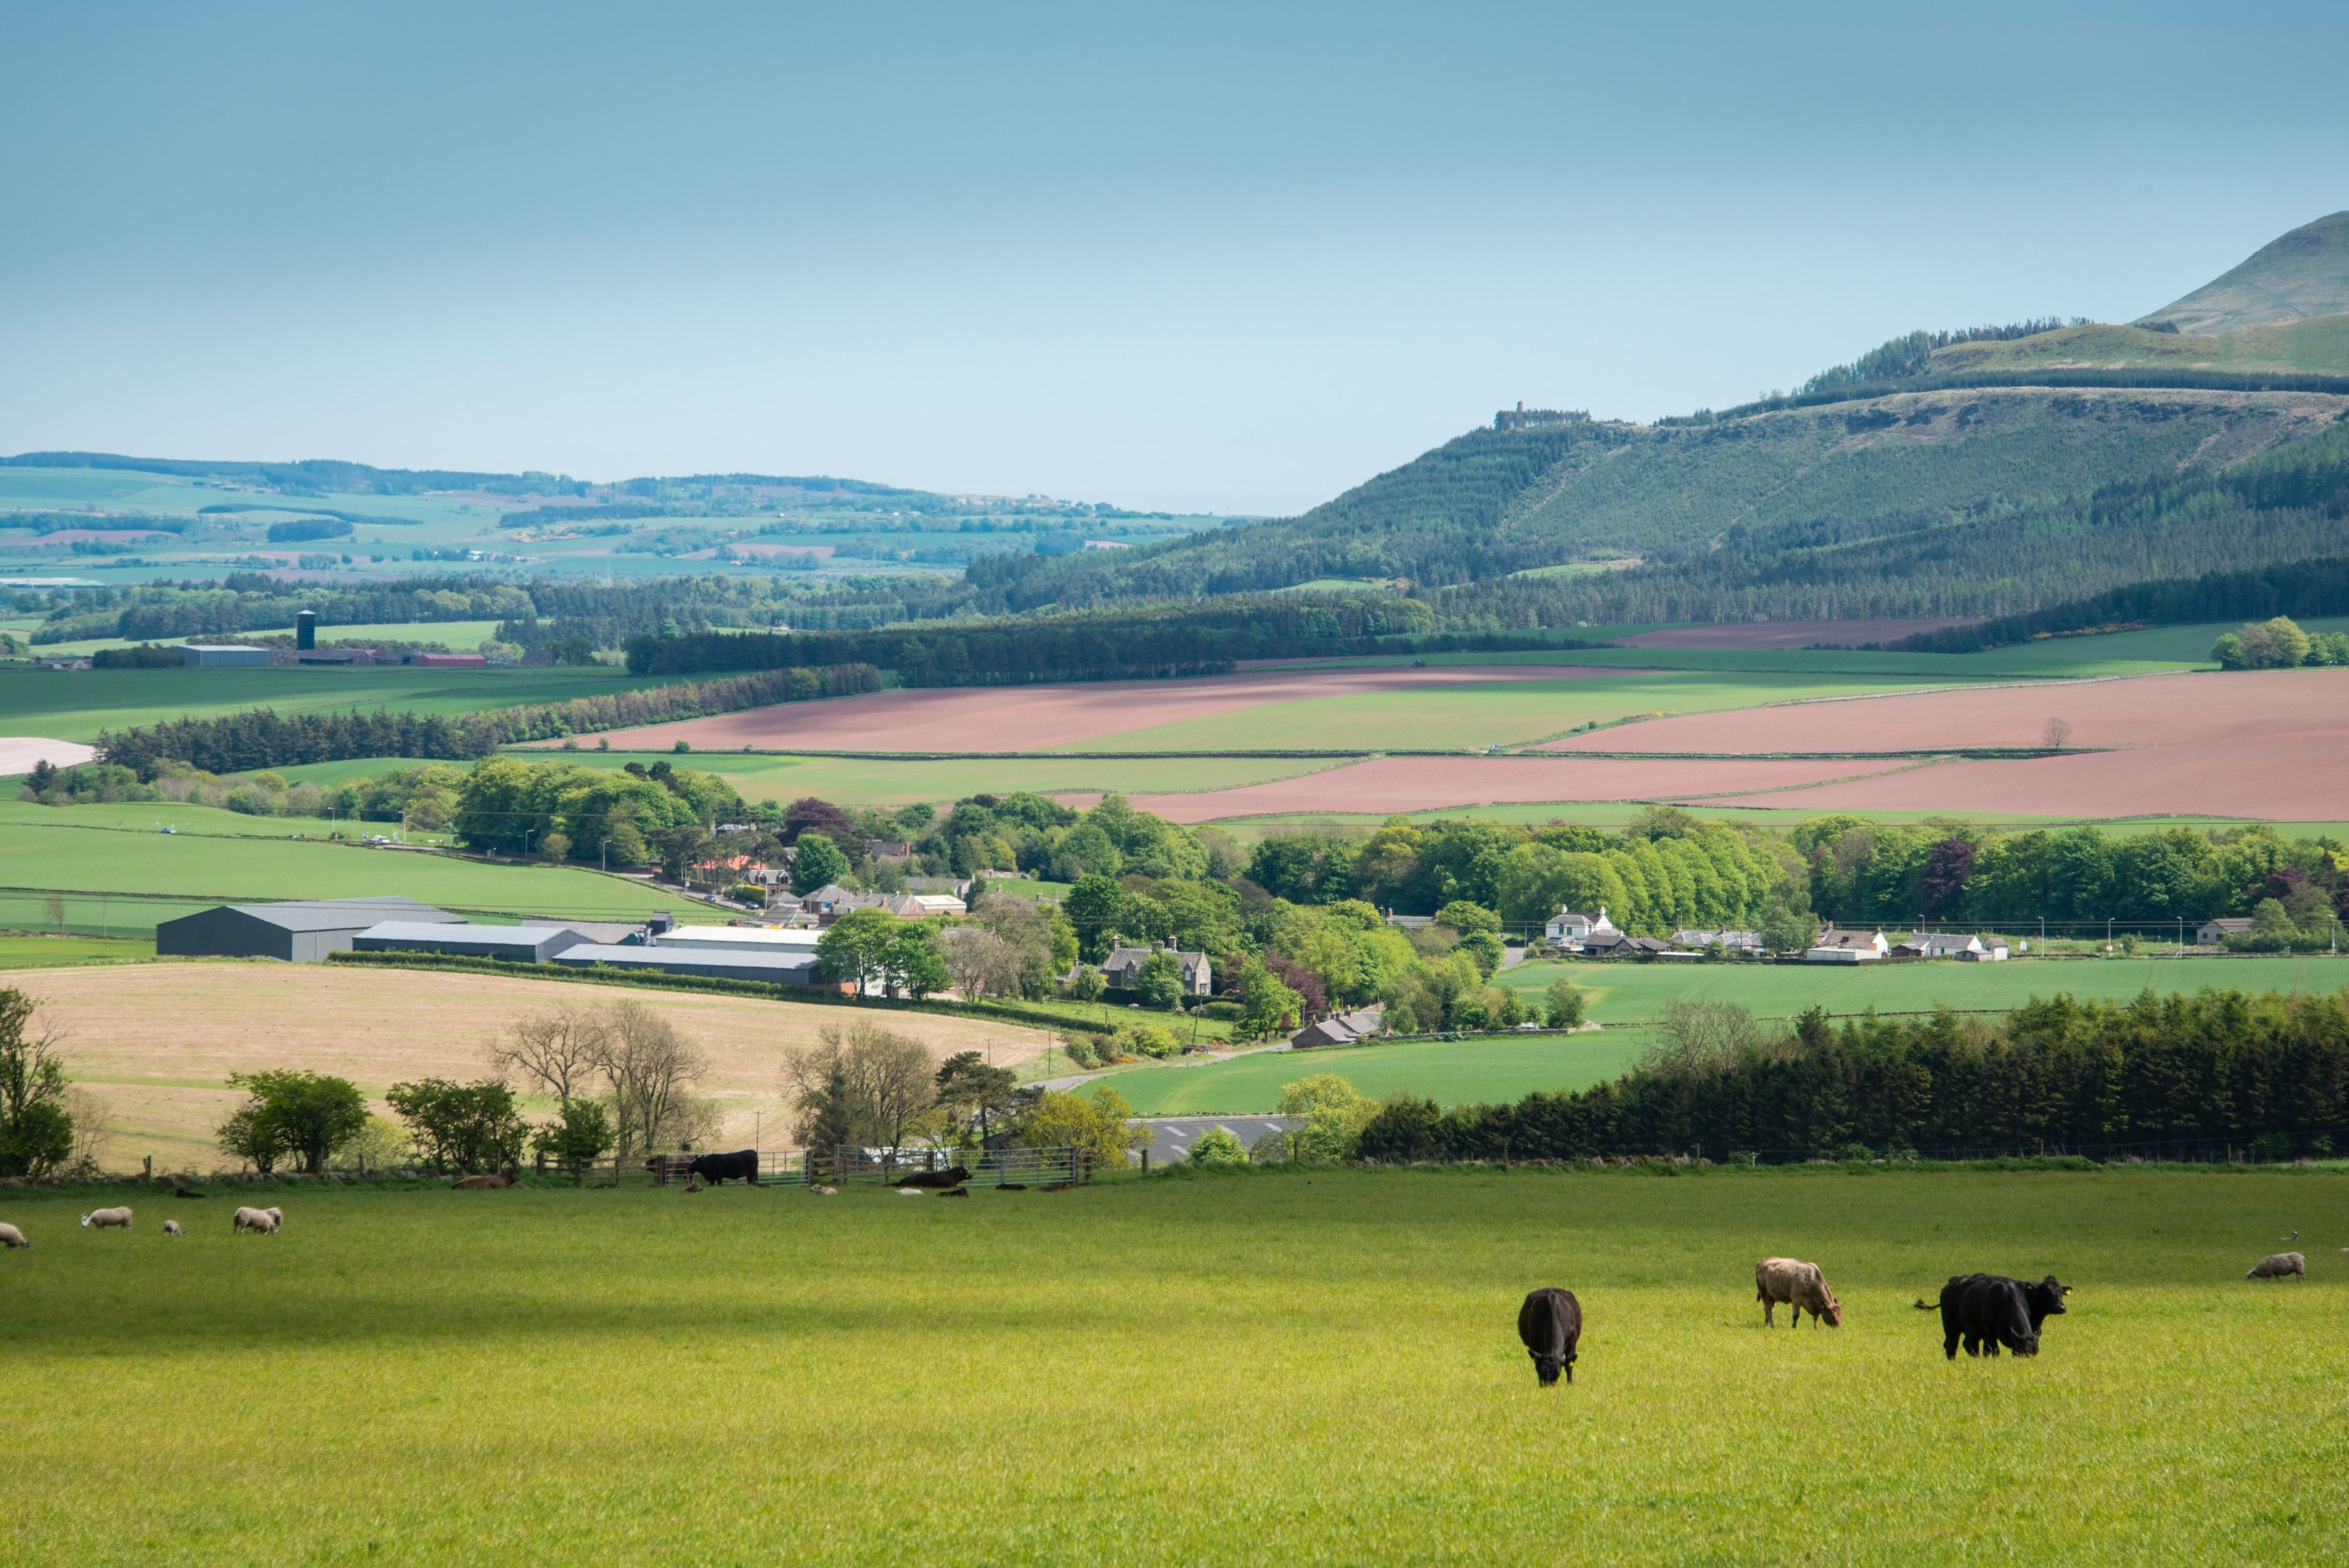 Post-Brexit funding presents 'a challenge but also opportunity' for farming